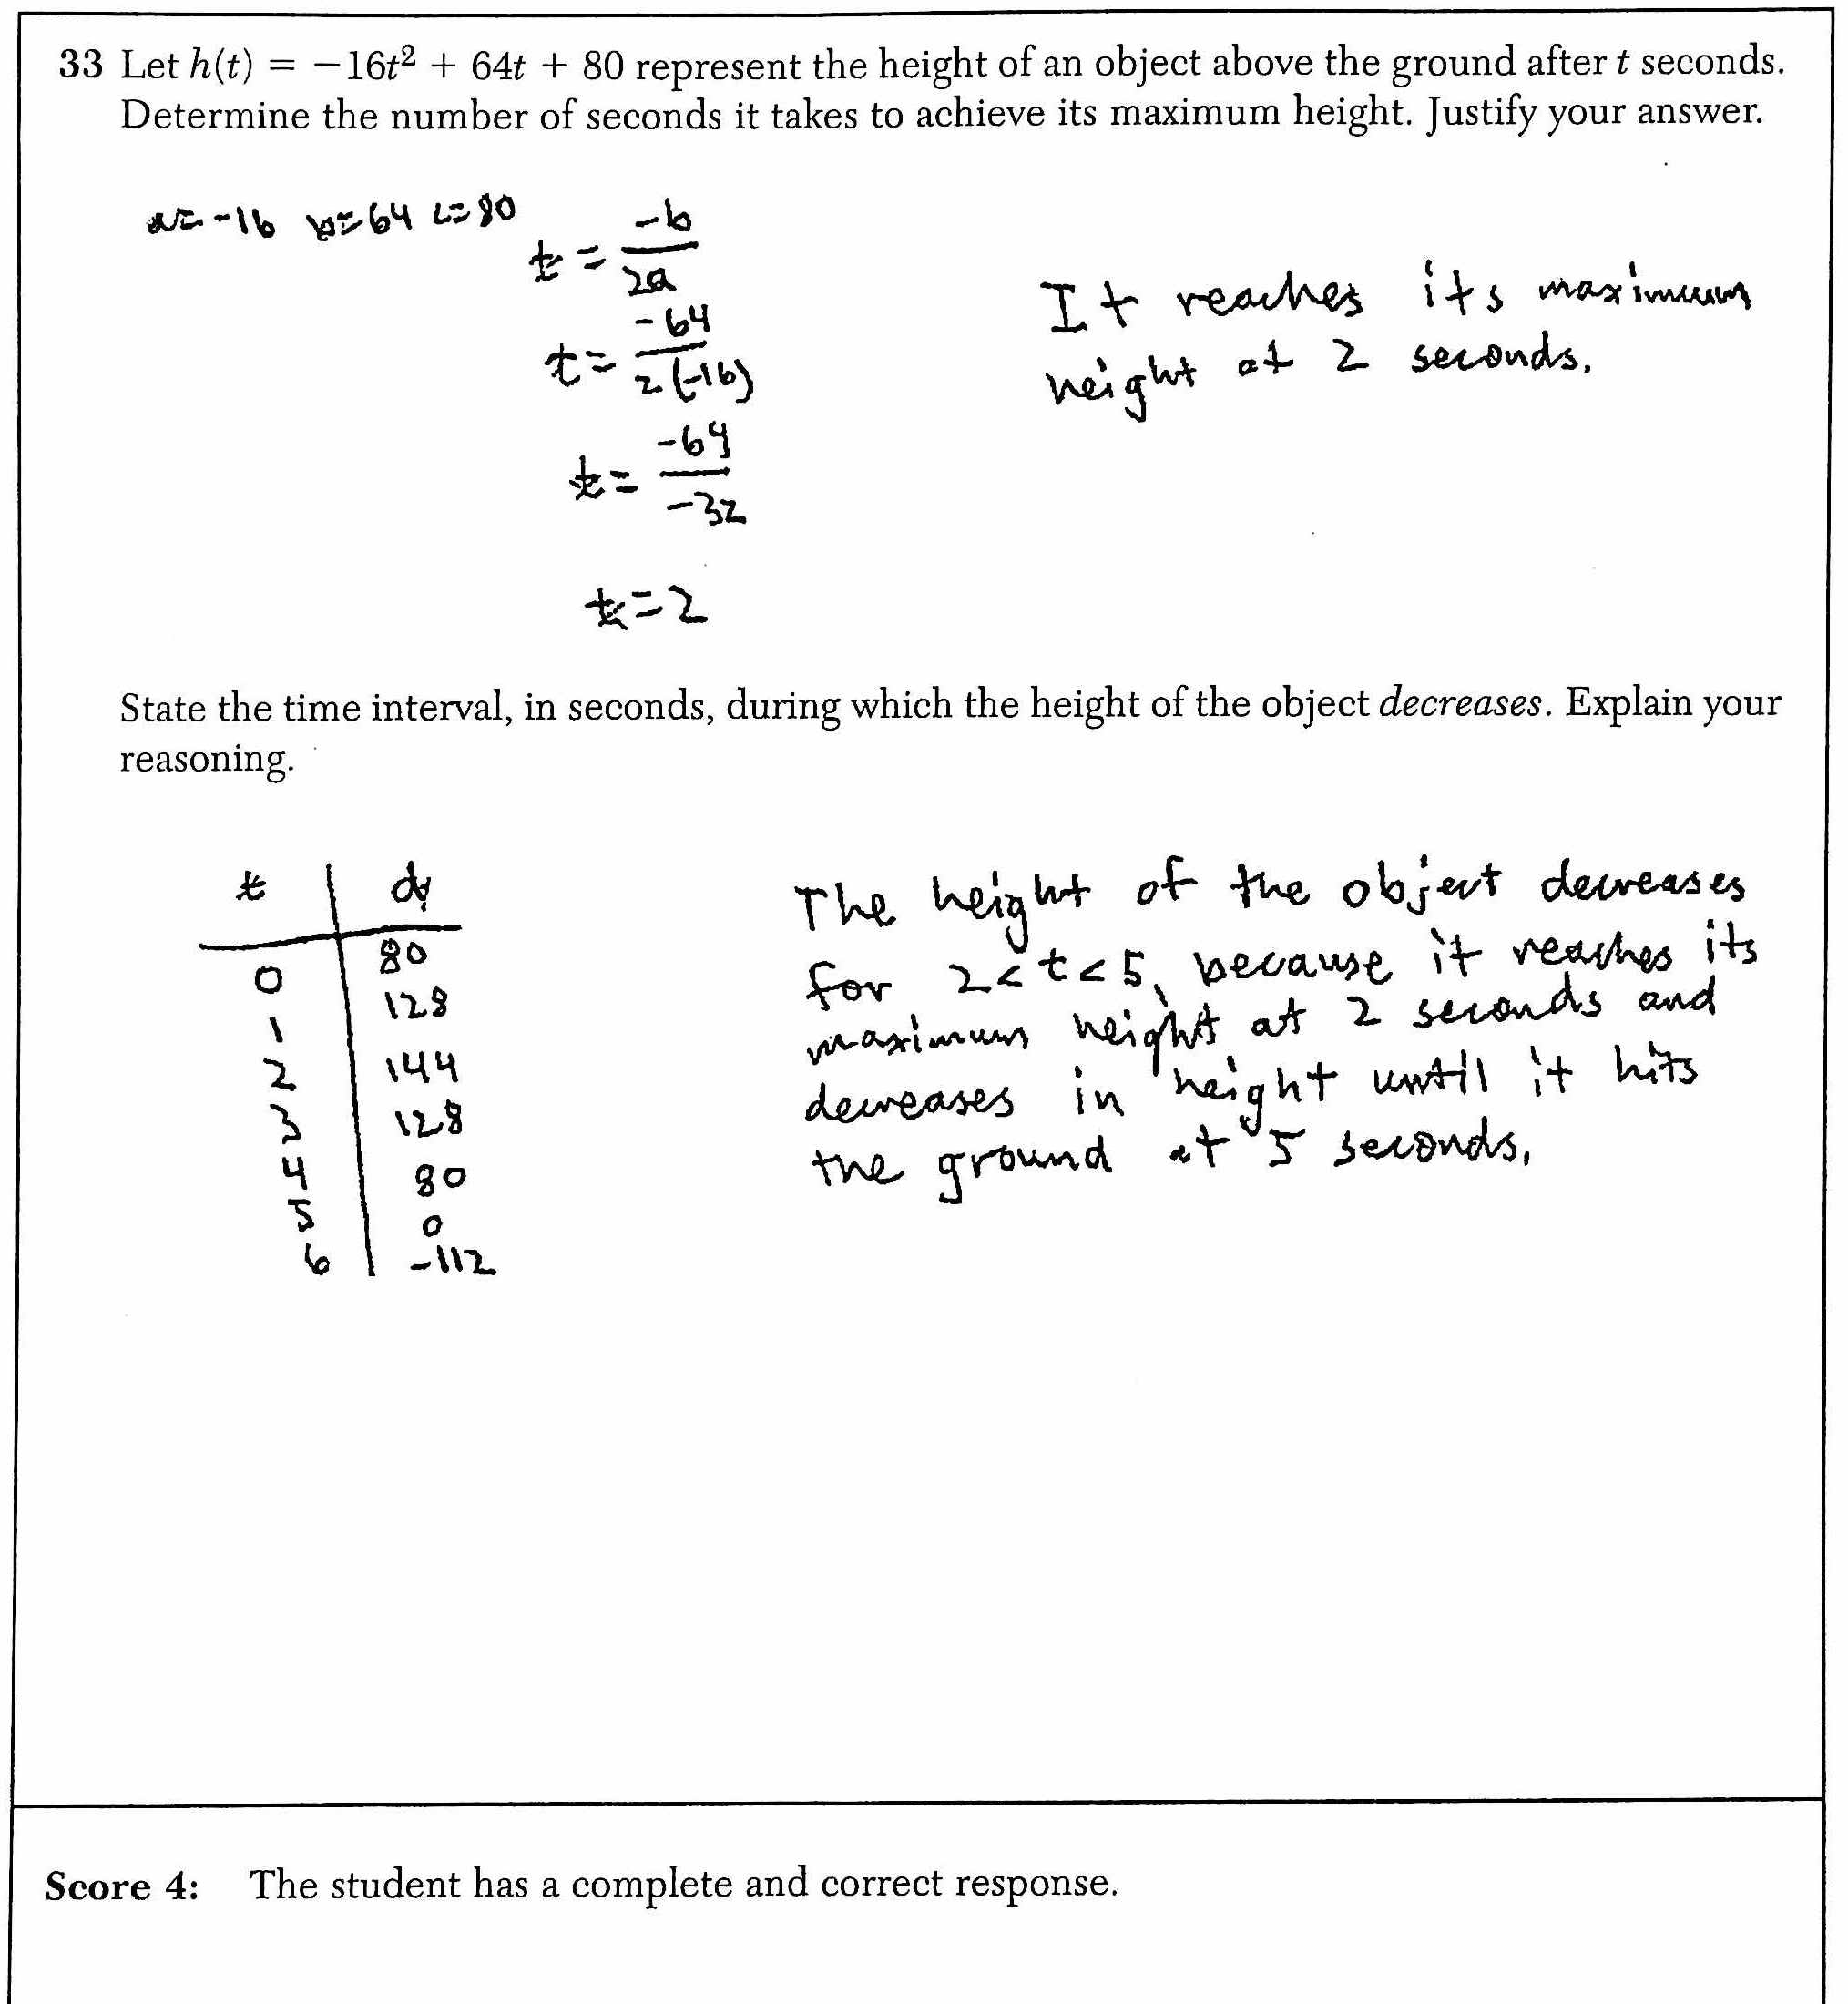 Algebra I Unit 3 Archives - eMathInstruction